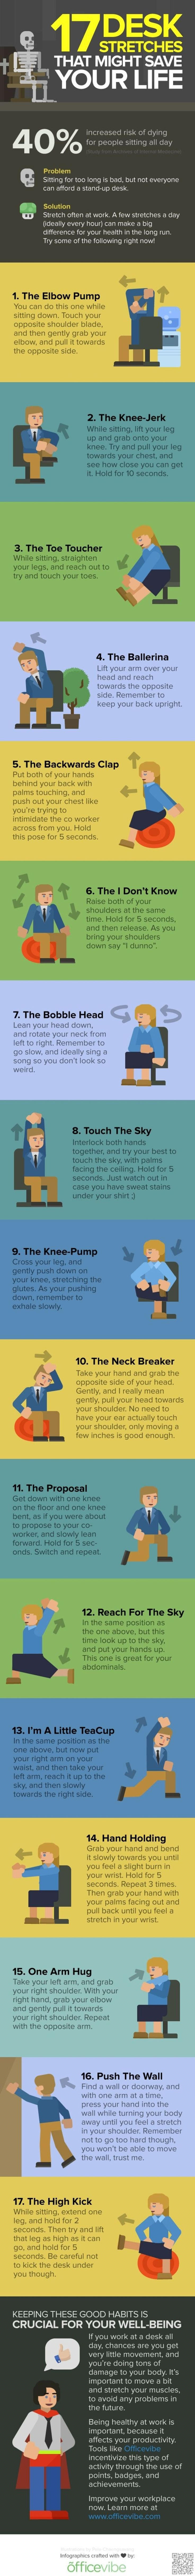 20 #Infographics for Stretching That'll Make You Super Bendy in 2 Weeks ...                                                                                                                                                                                 More